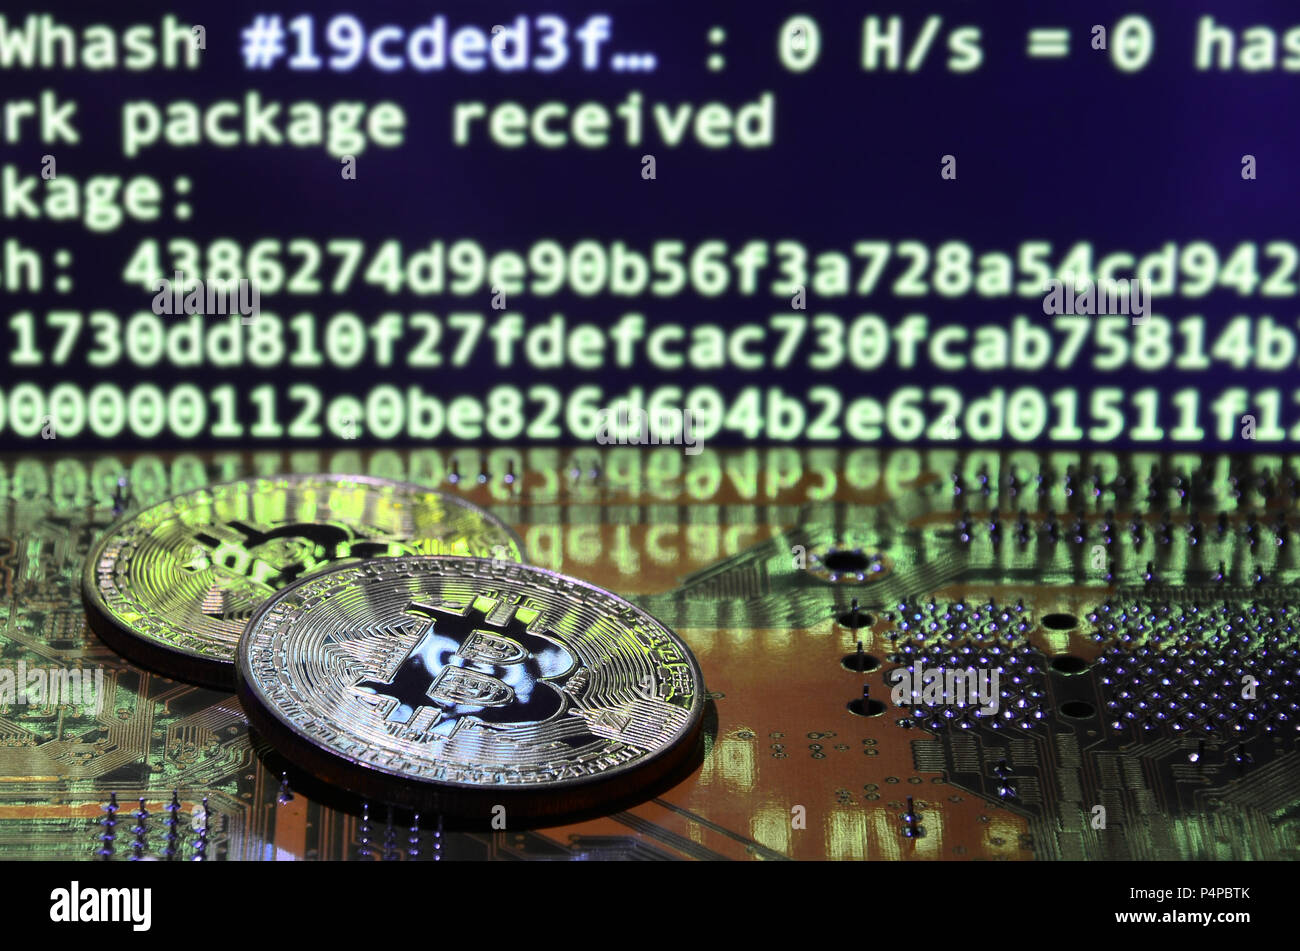 The Digital Process Of Cryptocurrency Mining By Using GPUs Bitcoins And Video Card On A Working Display Screen